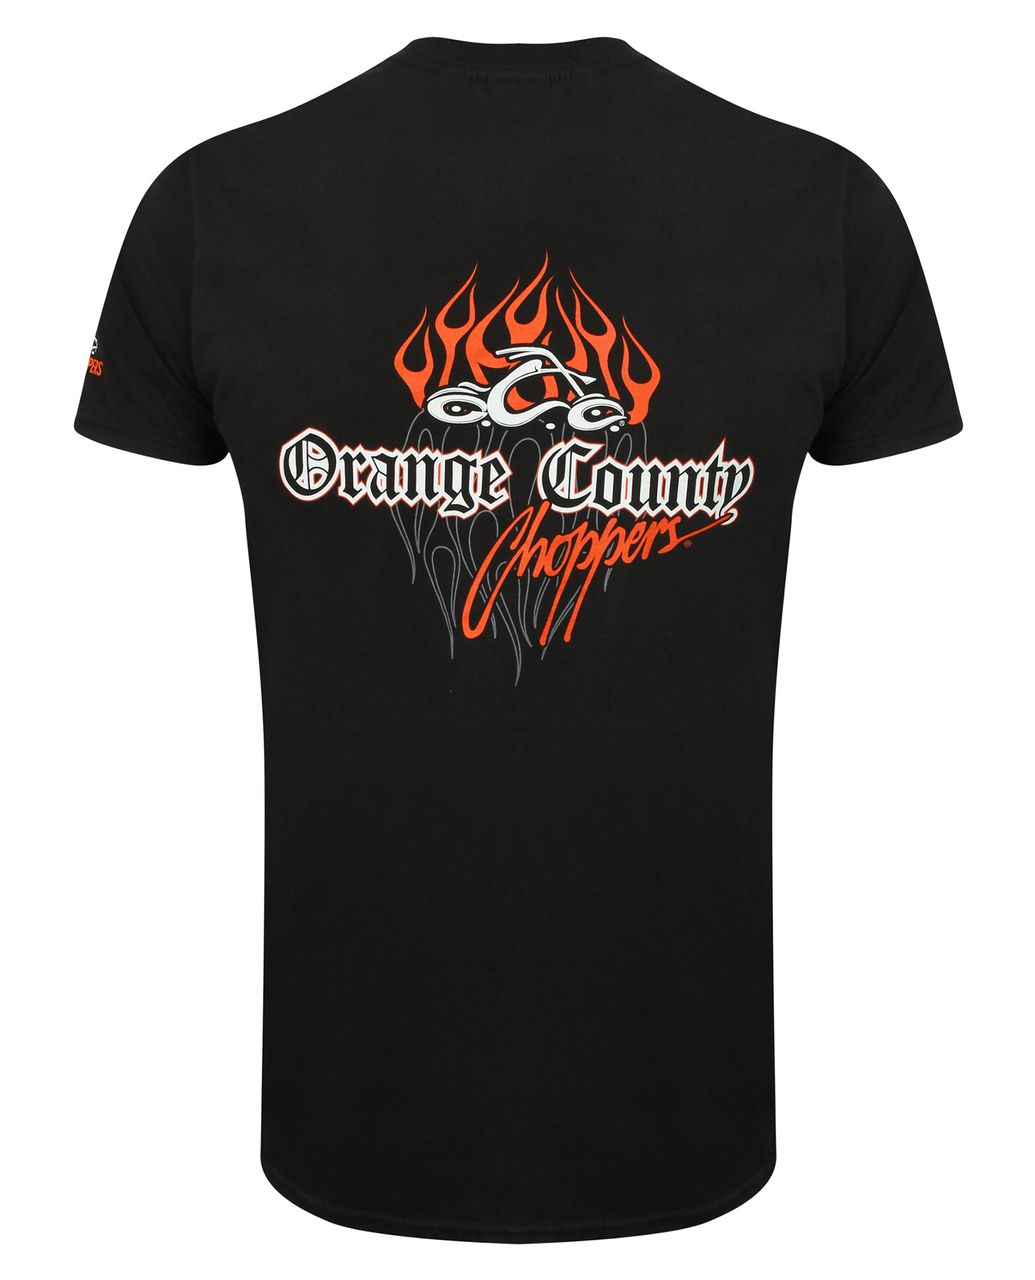 682d7e57 Pinstripe Flame OCC T-Shirt Front and Rear Print Orange County Choppers  logo on left sleeve Colour: Black 100% Cotton Official Orange County  Choppers ...